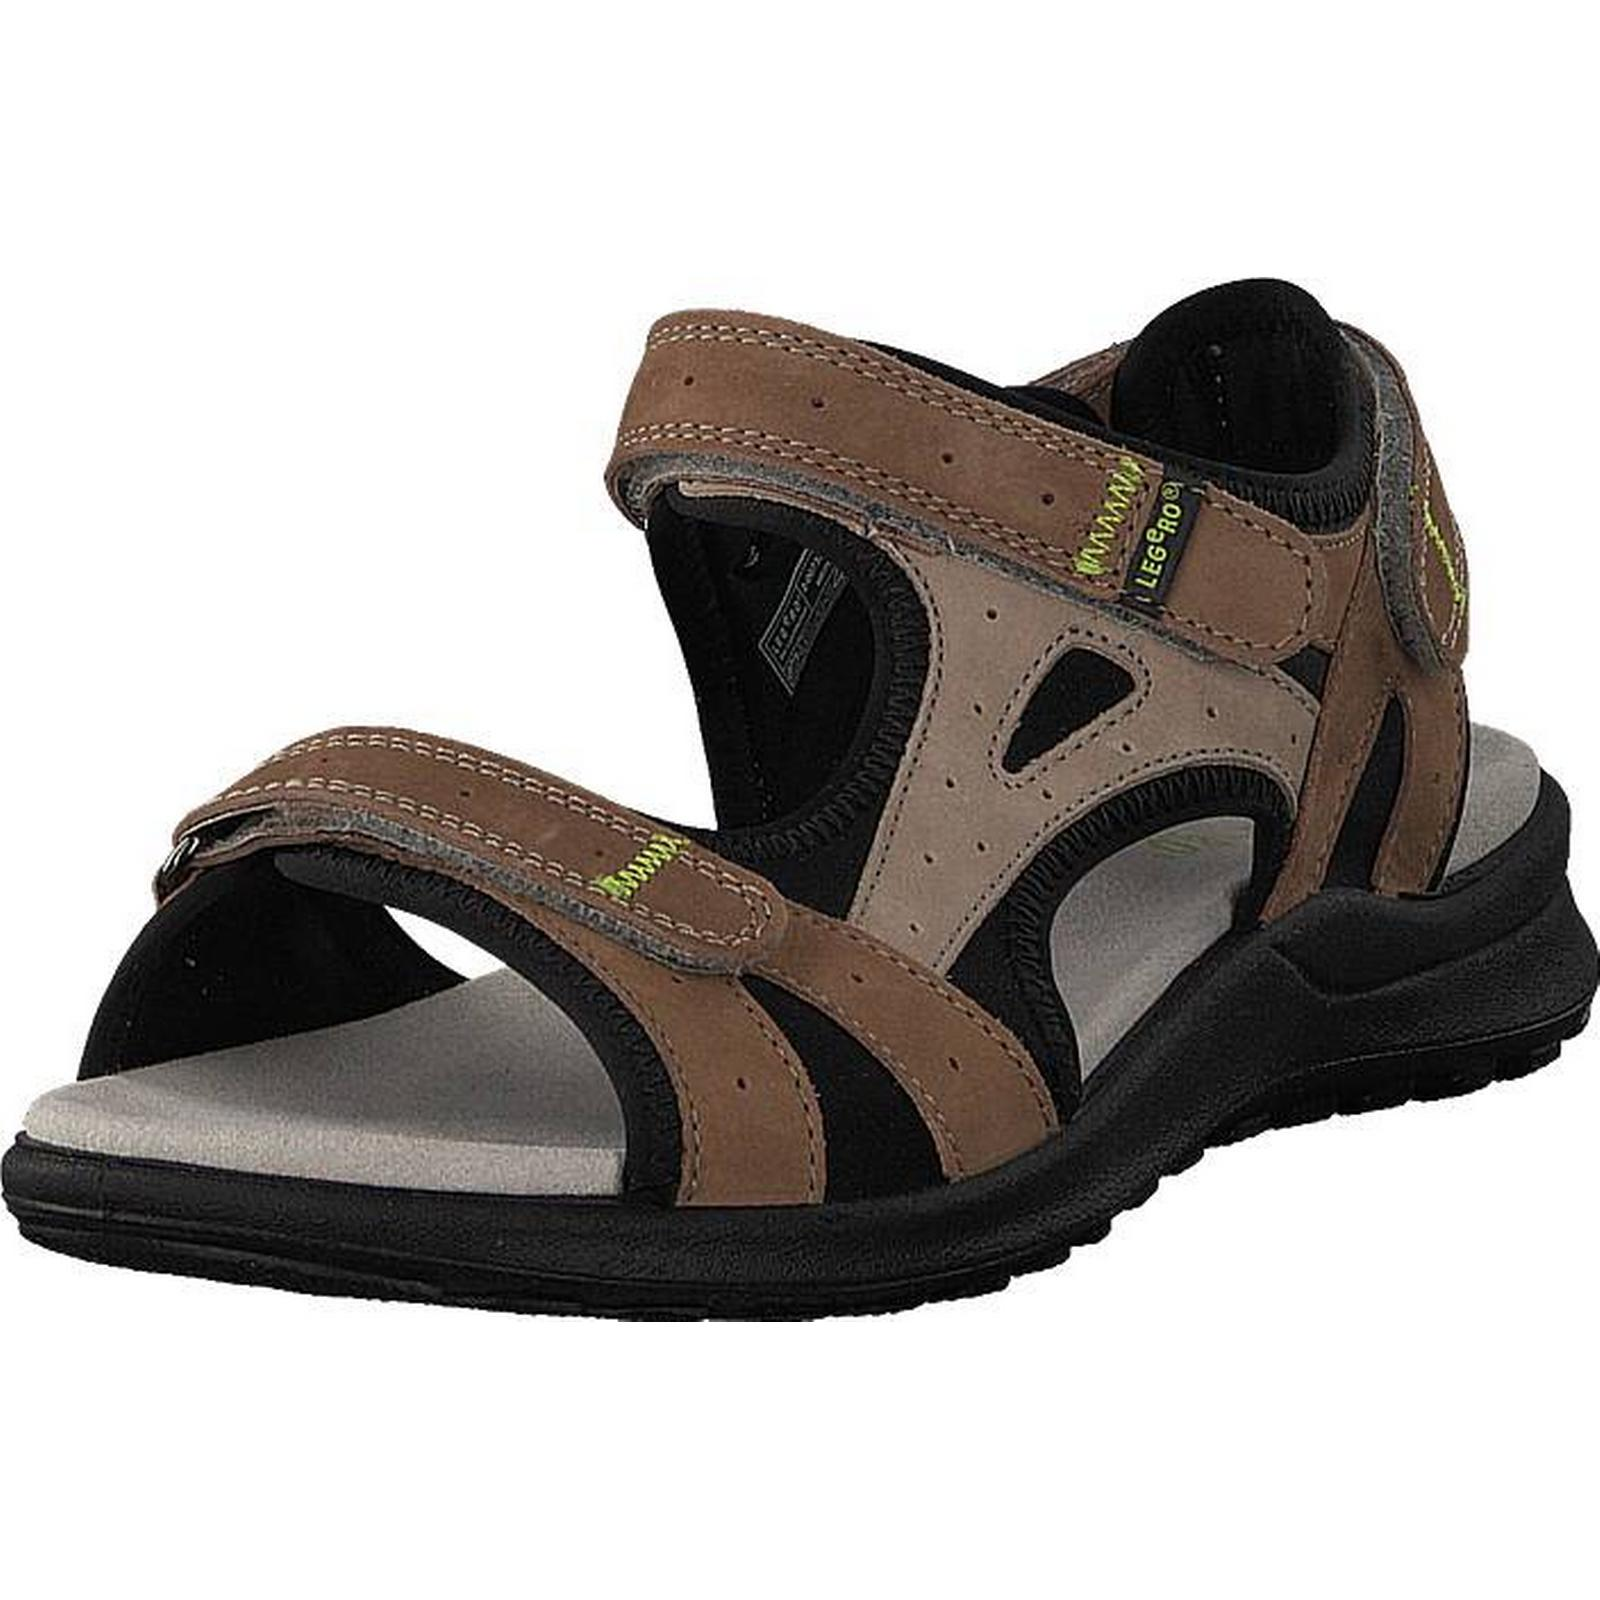 Legero Siris Cloud, Shoes, Sandals & Sports Slippers, Sports & Sandals, Brown, Female, 36 f98d53